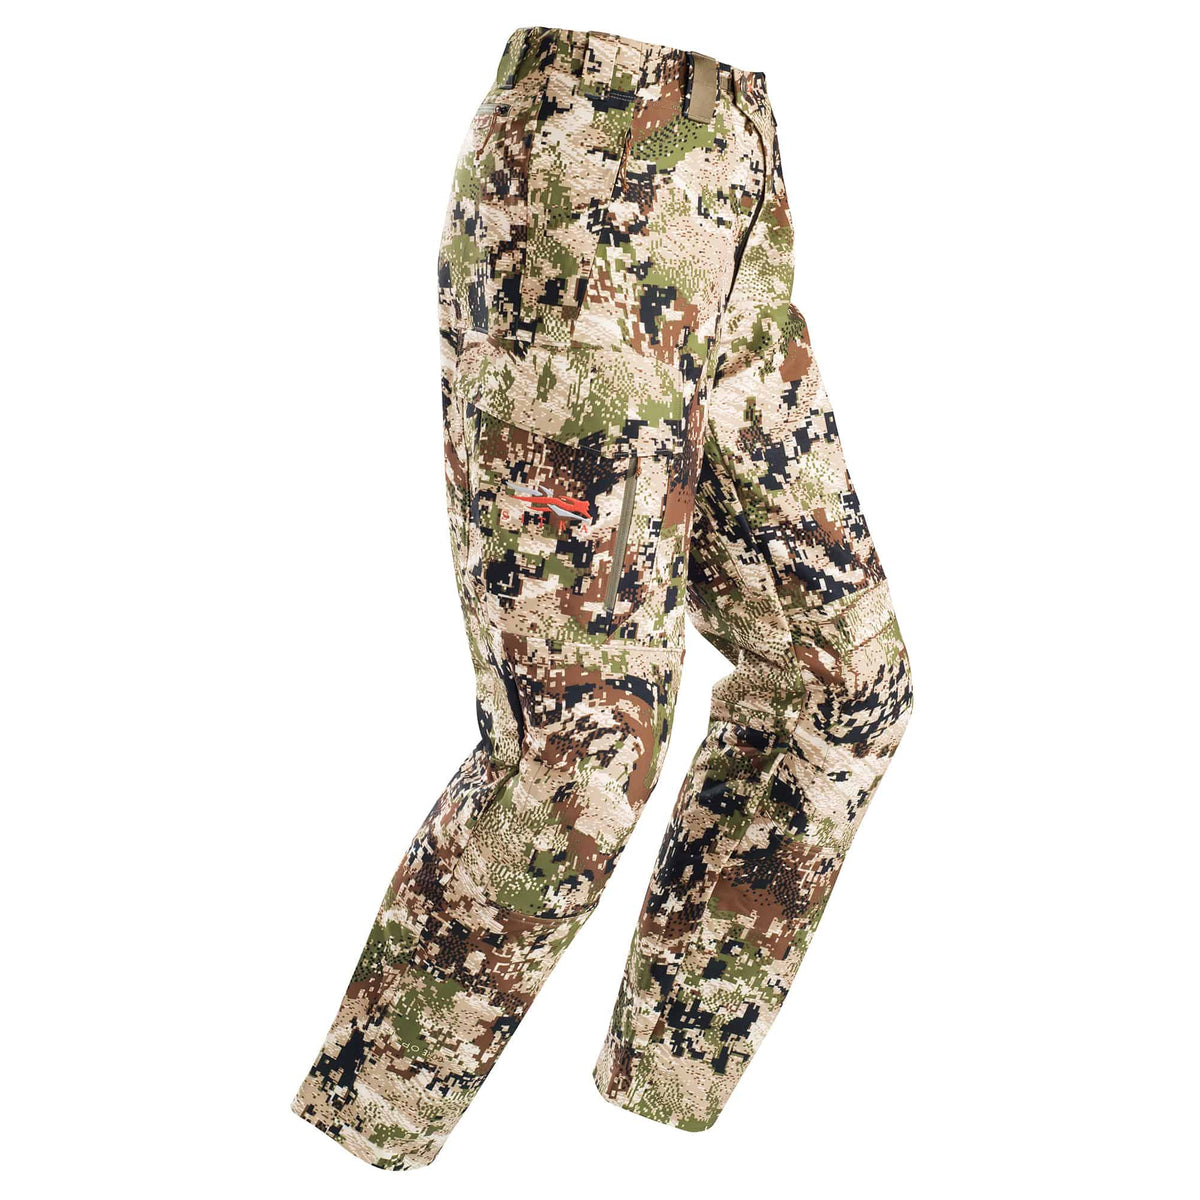 SITKA Gear Mountain Pant Optifade Subalpine